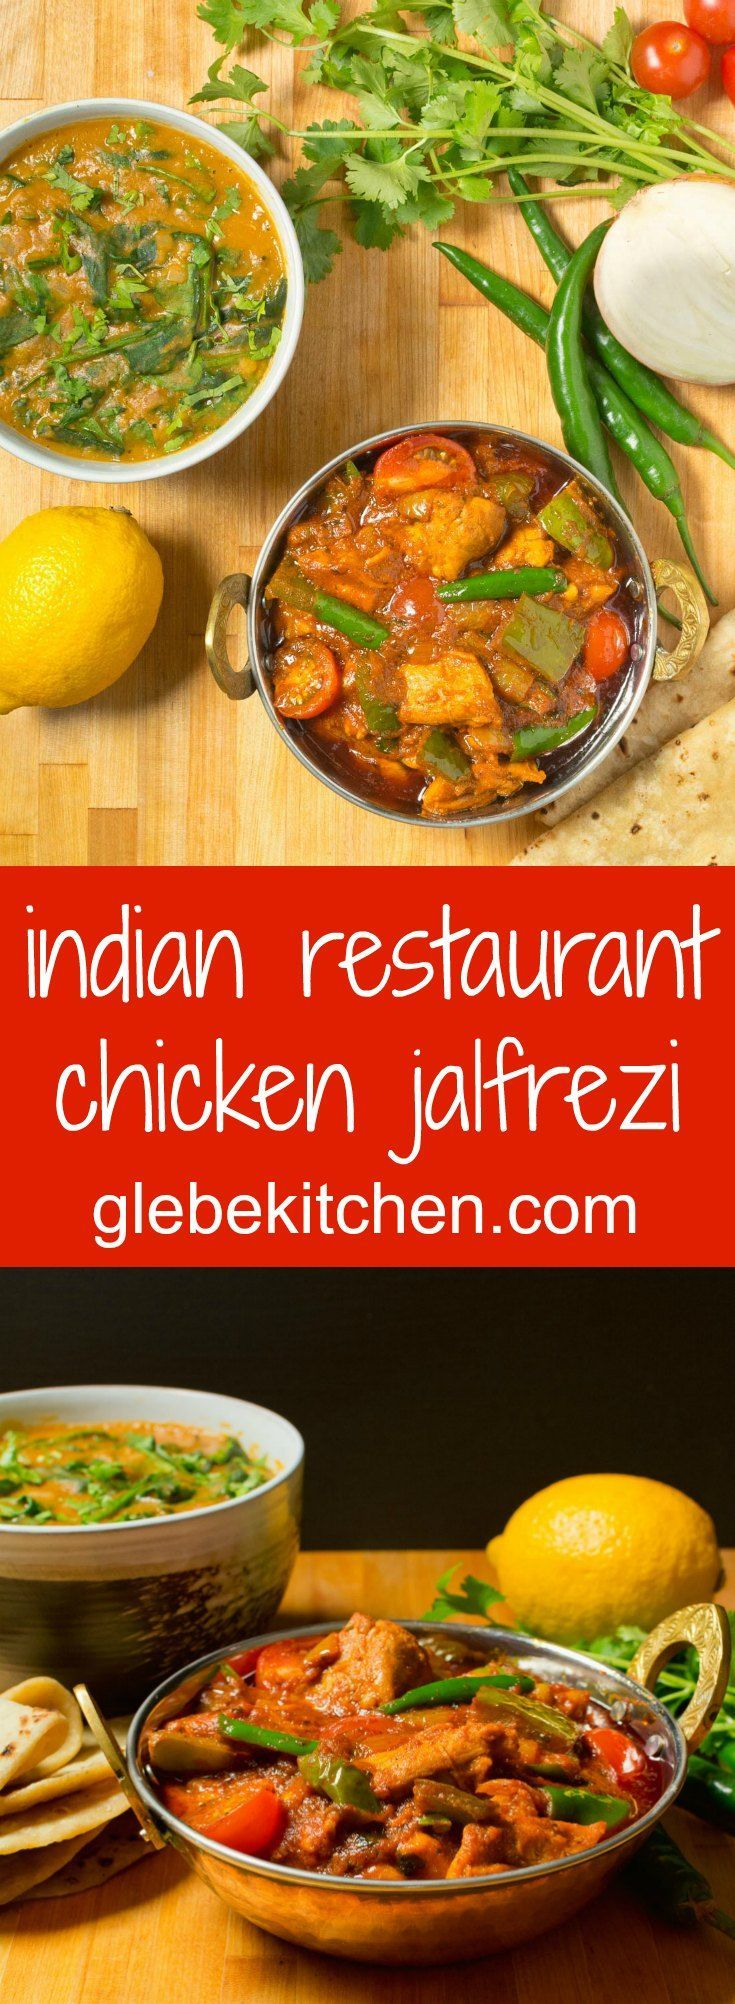 Indian restaurant chicken jalfrezi is a hot, smoky curry. It's no wonder it's a favourite.